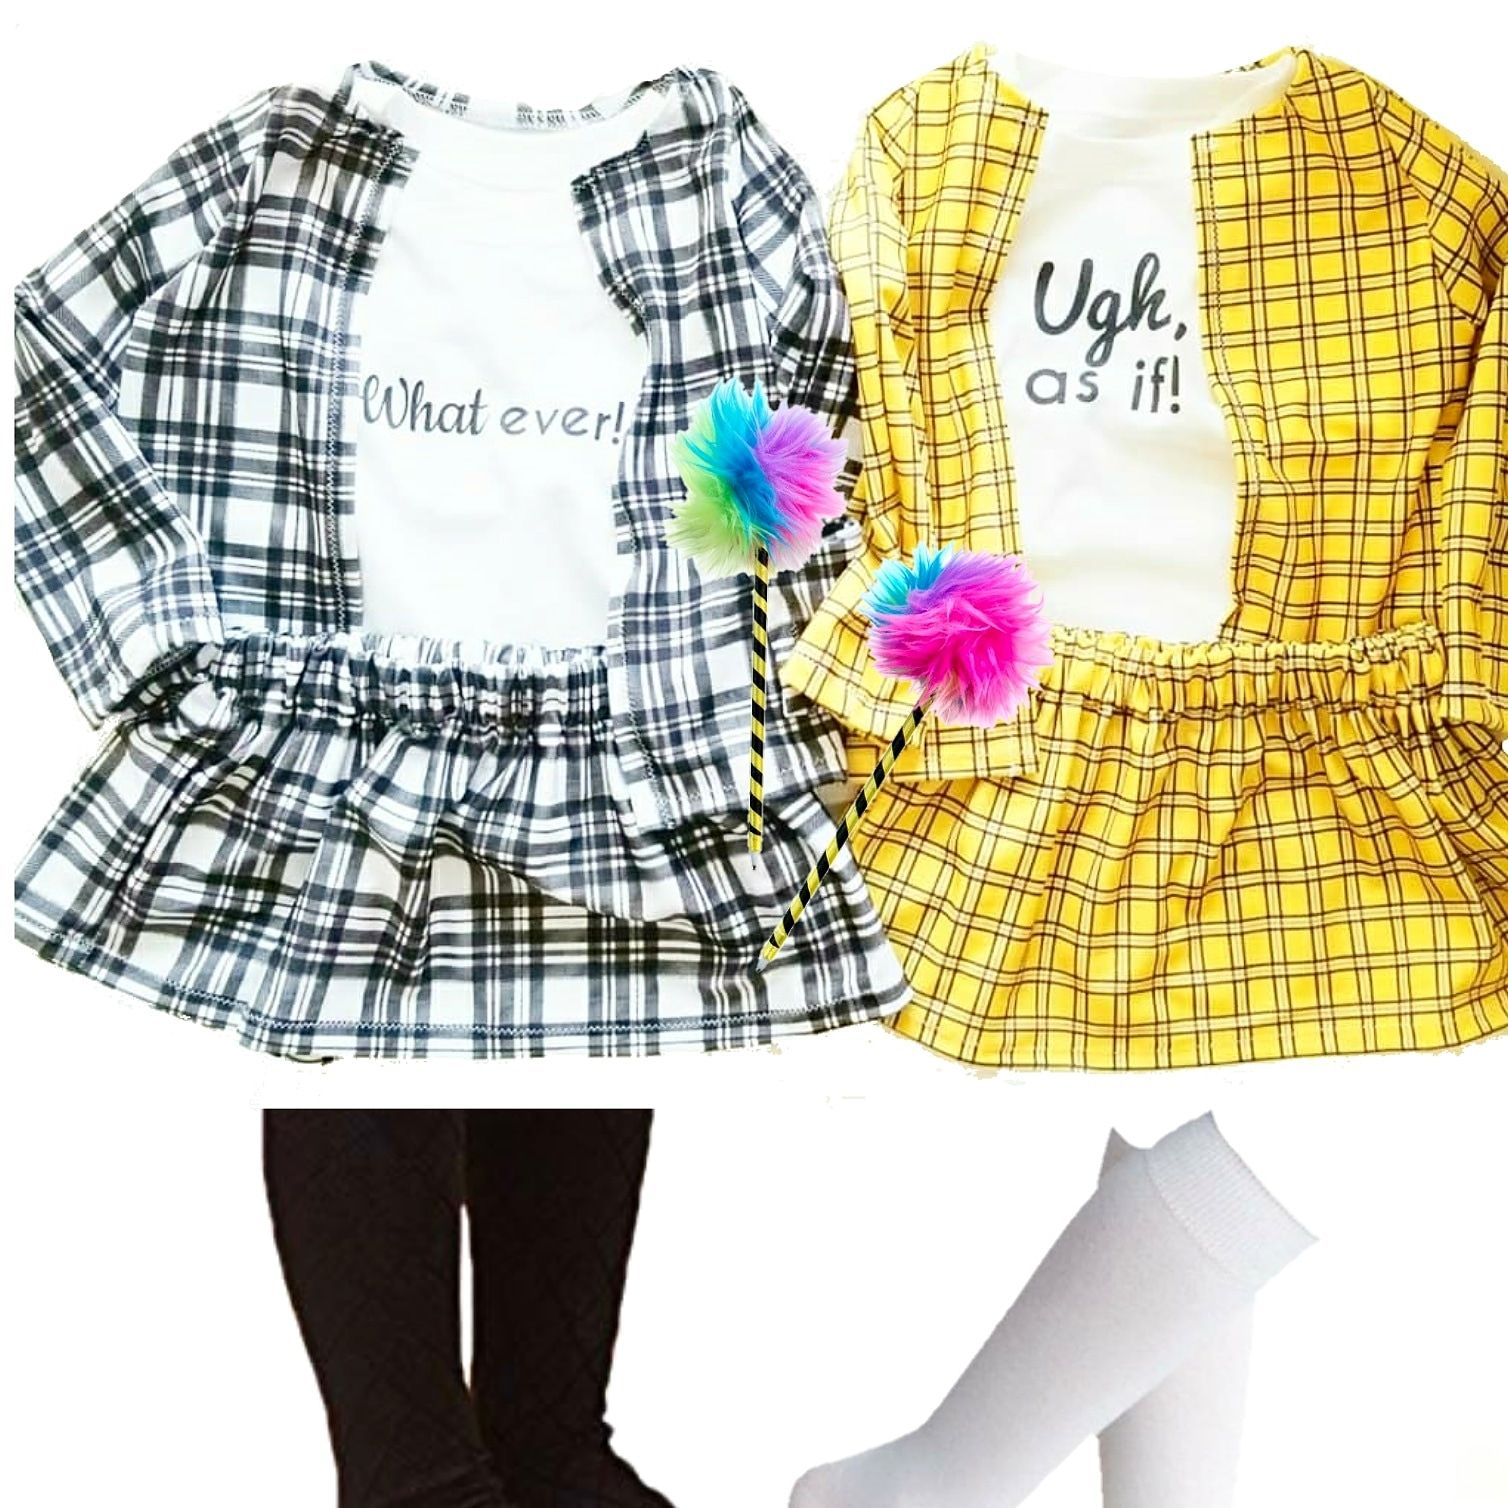 Cher Dionne Toddler Halloween Costumes Toddler Halloween Costumes Clueless Hallo Halloween Costume Toddler Girl Clueless Costume Clueless Halloween Costume